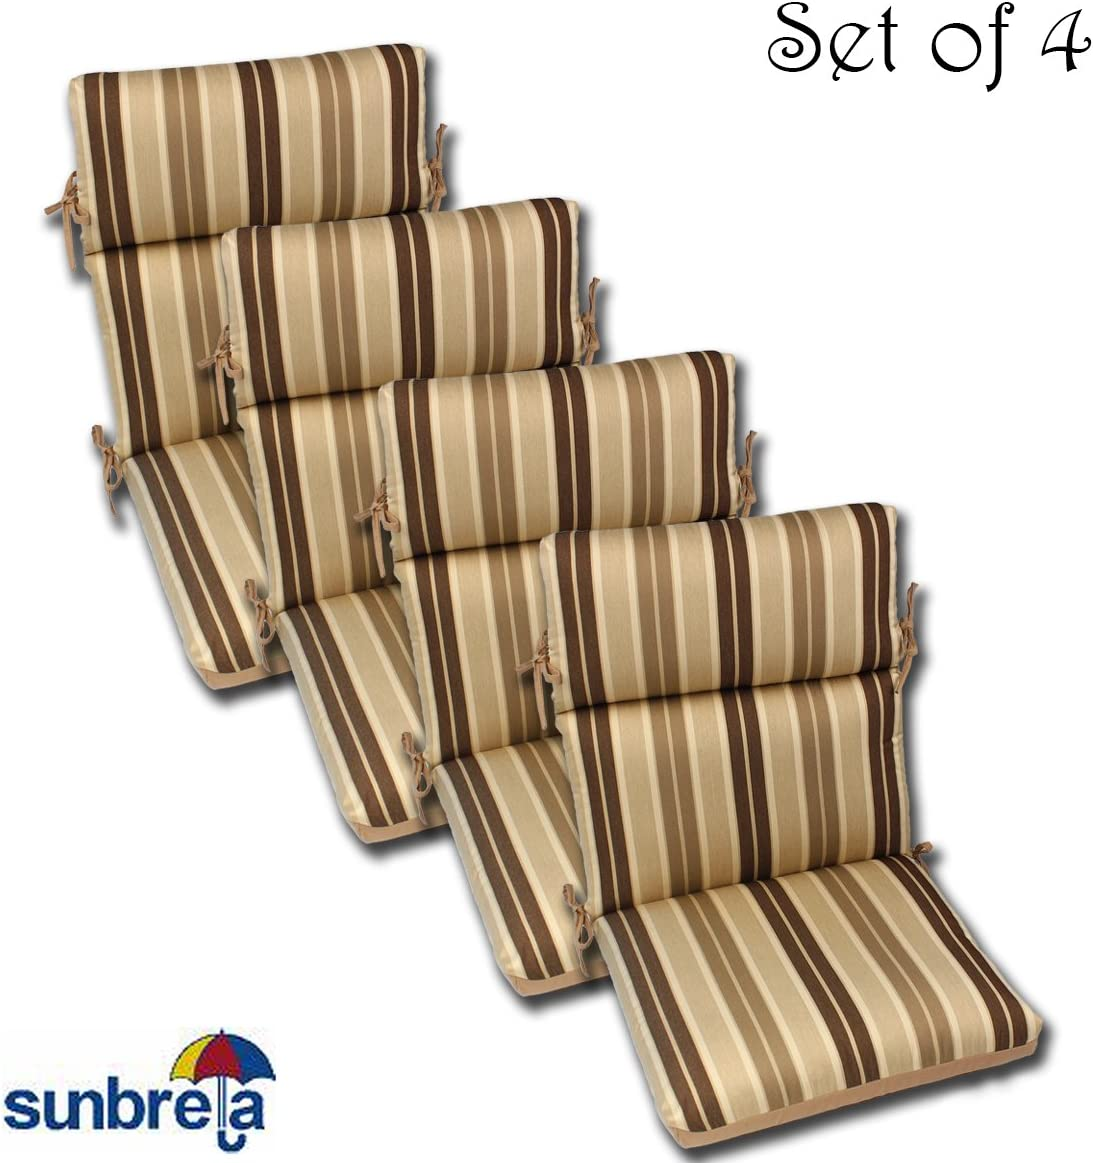 Comfort Classics Inc. Set of 4 22x44x5 Acrylic Outdoor CHANNELED Reversible Chair Cushions